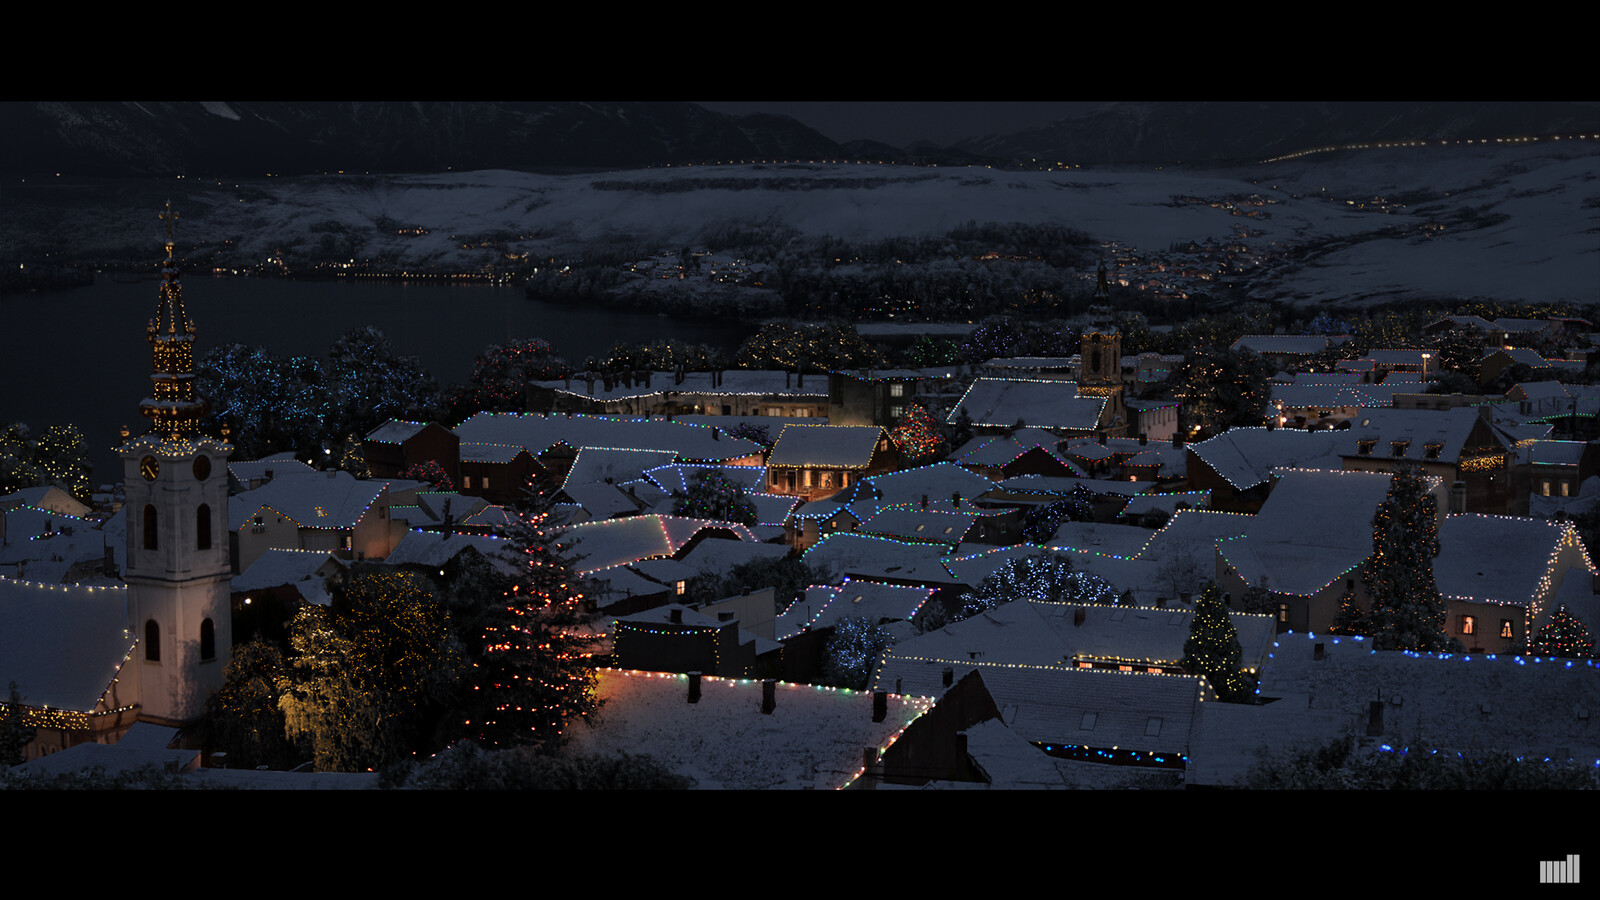 Huawei - Digital Matte Painting